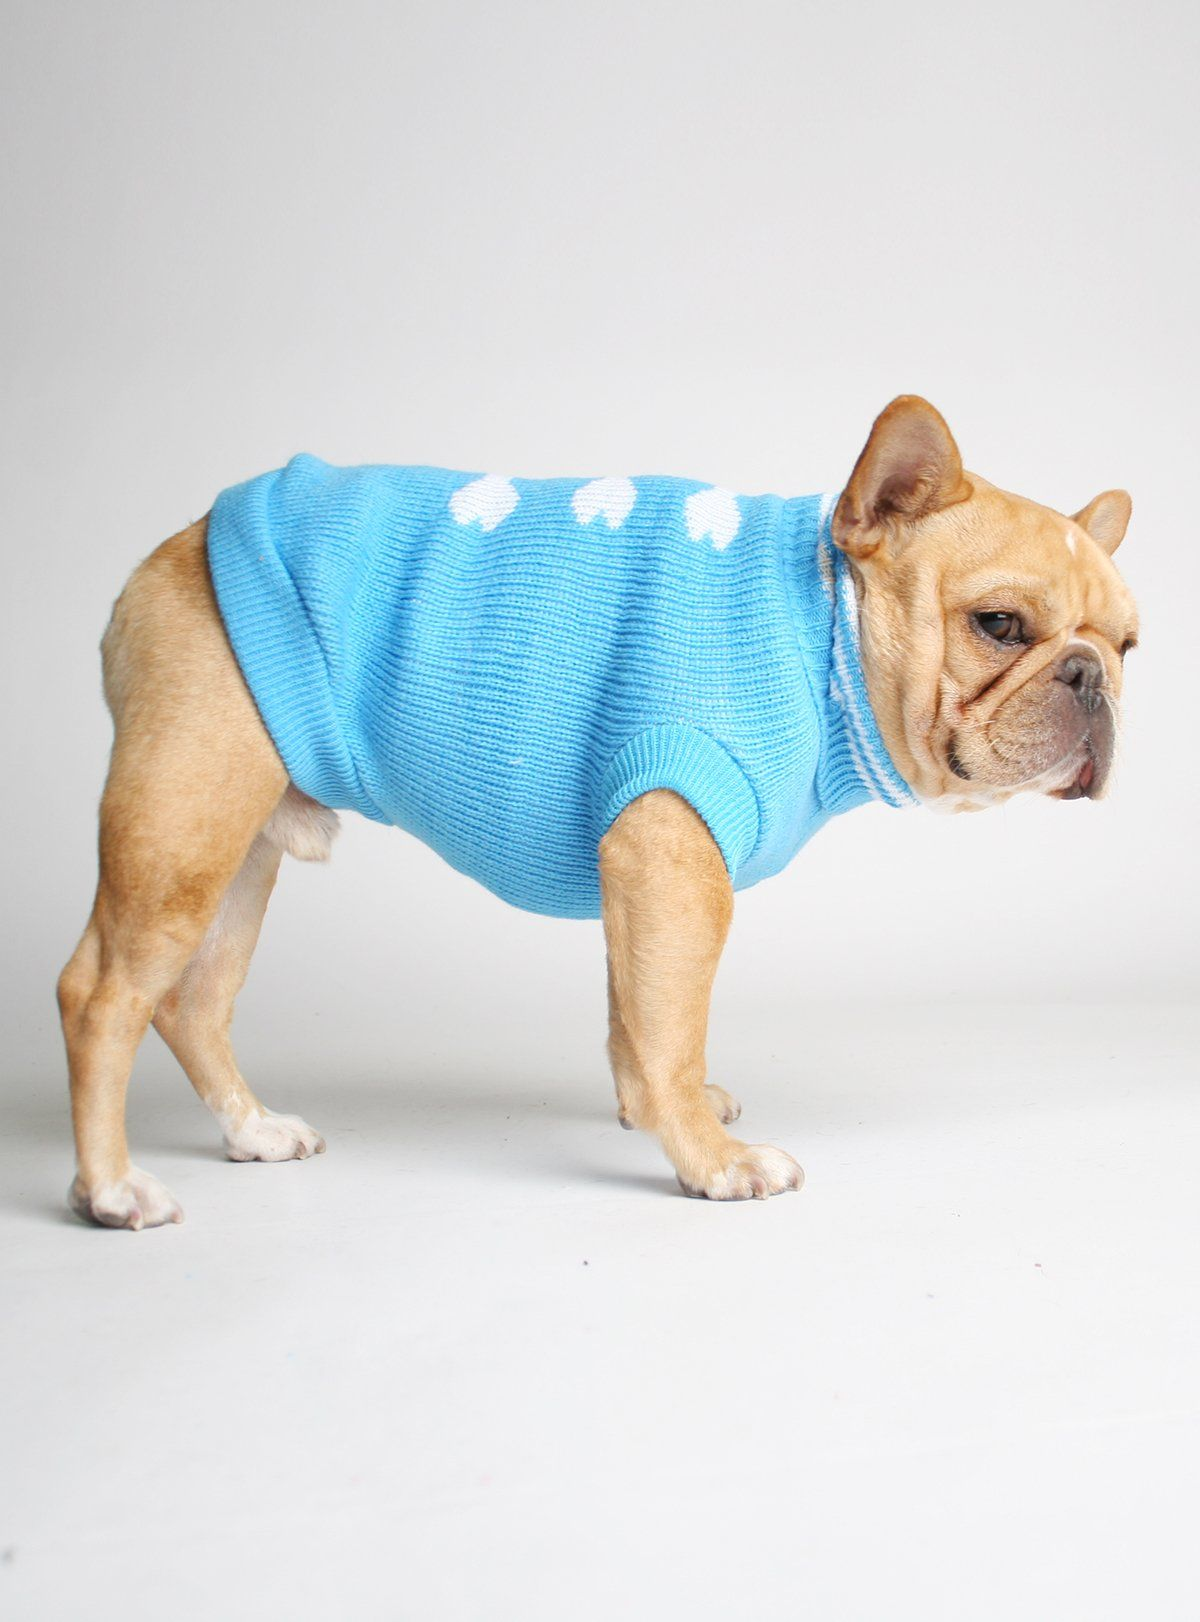 Glacial bones dog sweater | Products